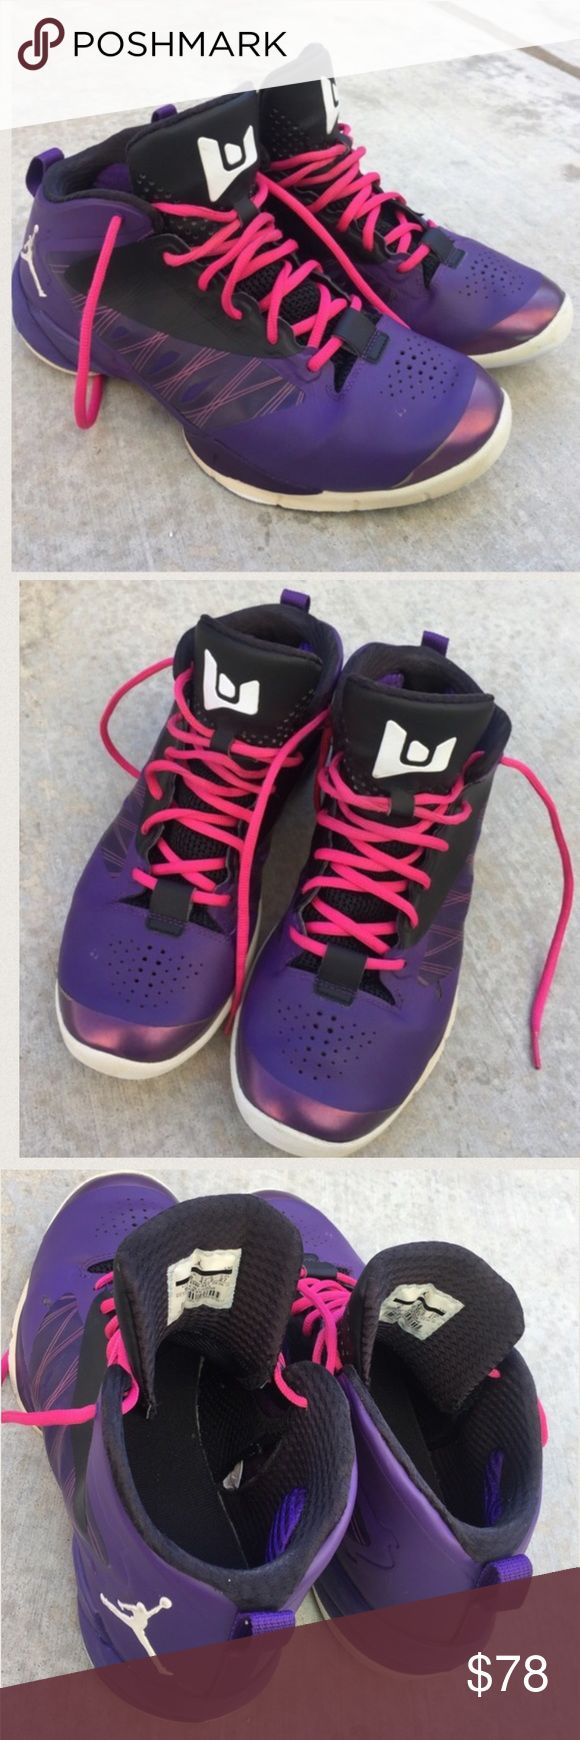 Michael Jordan Lunarlon purple high top sneakers Good condition overall , size 9, the left side of left sneaker has a peeled area , the inside right side of left shoe has an opening / separated area as shown in picture , price as is , look at all pictures for your info, Michael Jordan Lunarlon Michael Jordan Lunarlon Shoes Athletic Shoes